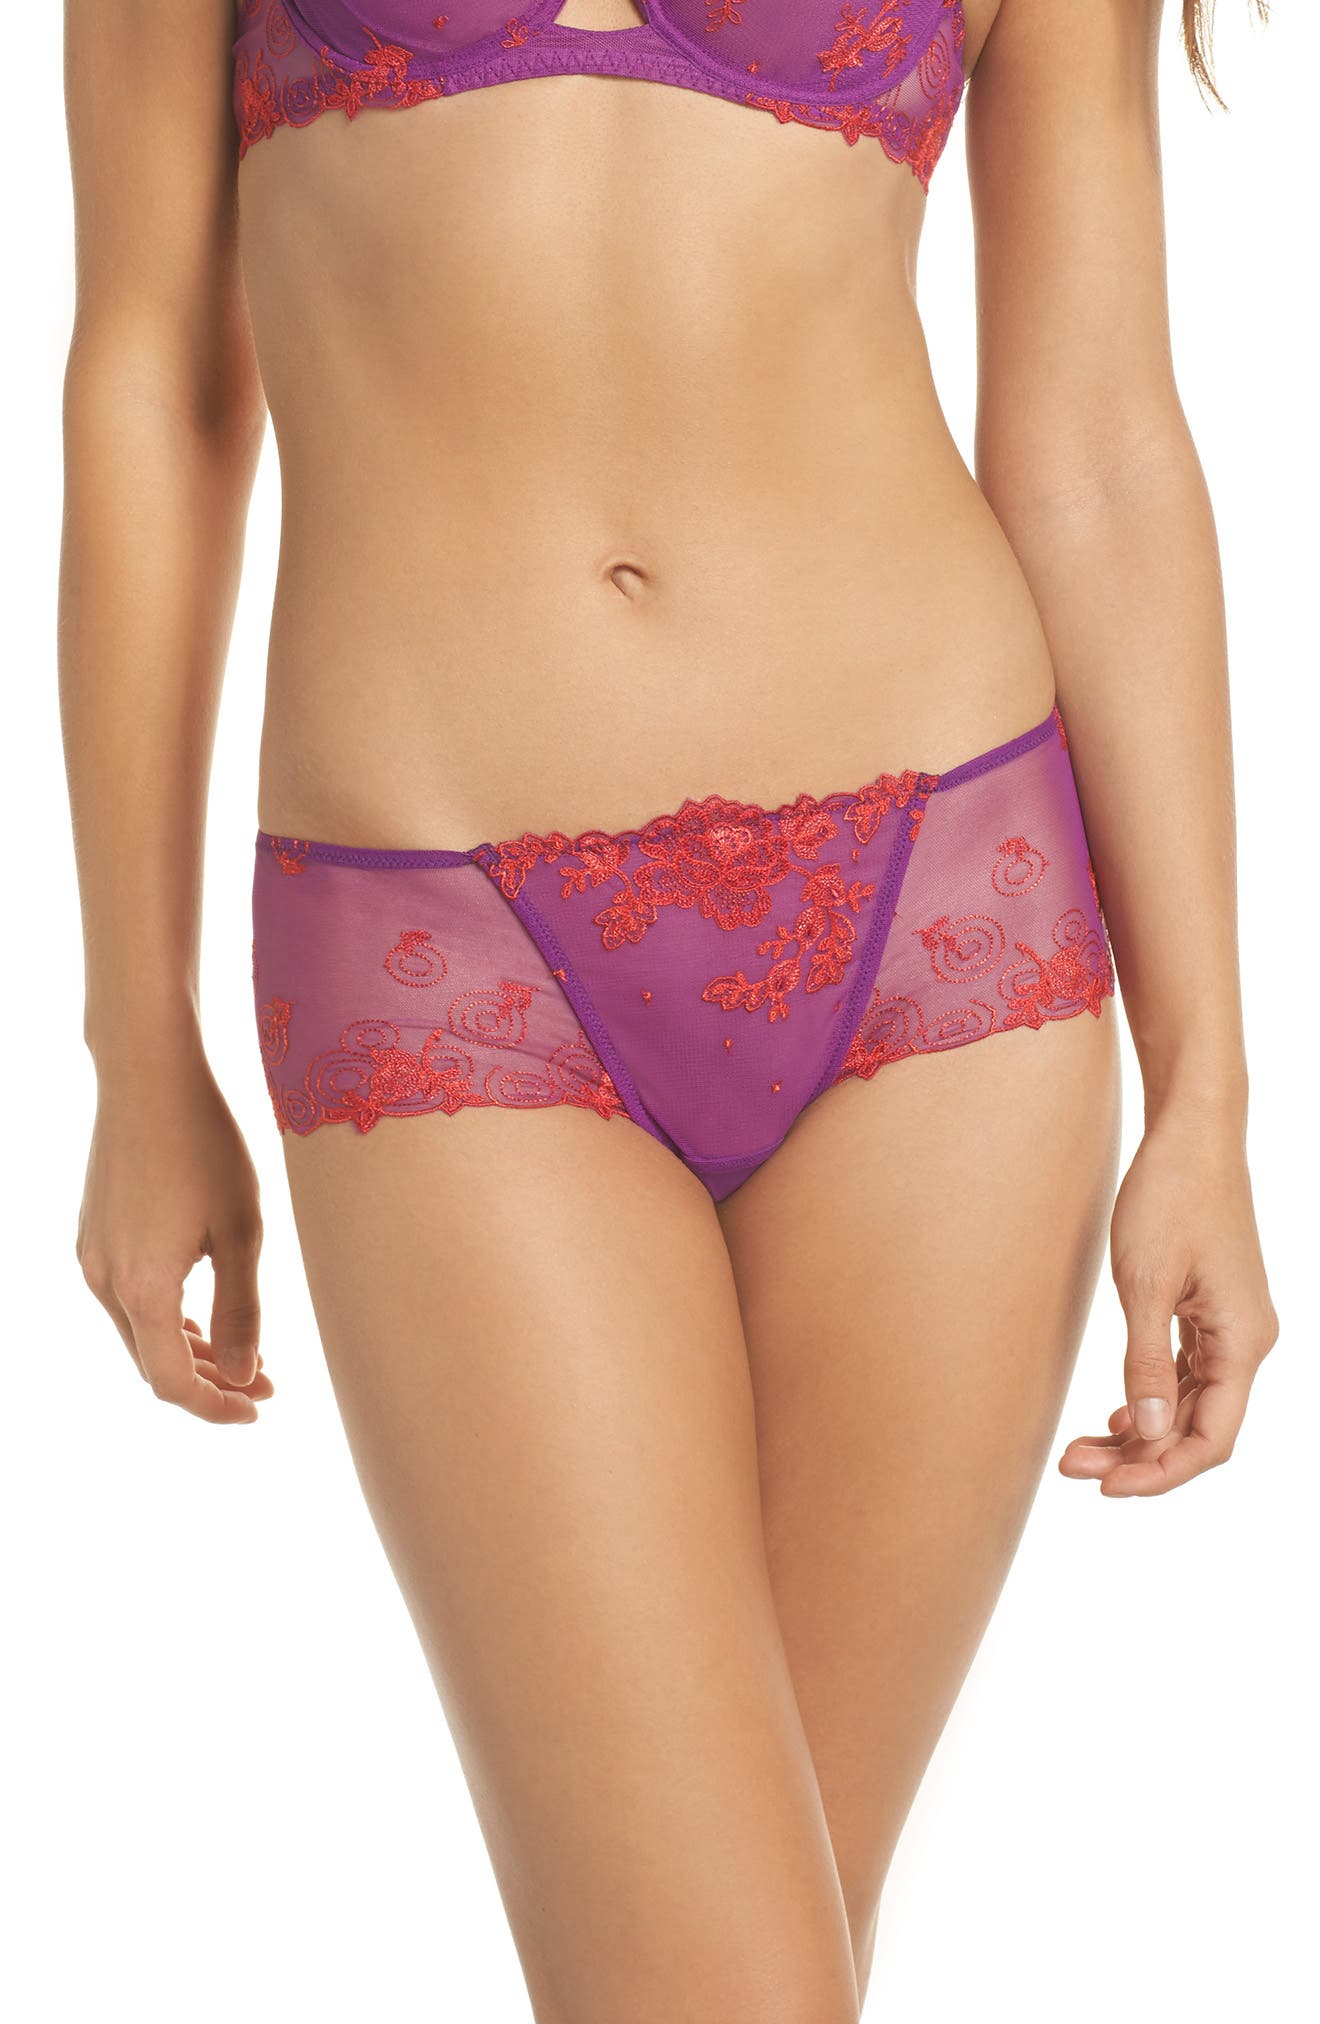 Baisers de Fleurs Boyshorts,                             Main thumbnail 1, color,                             930